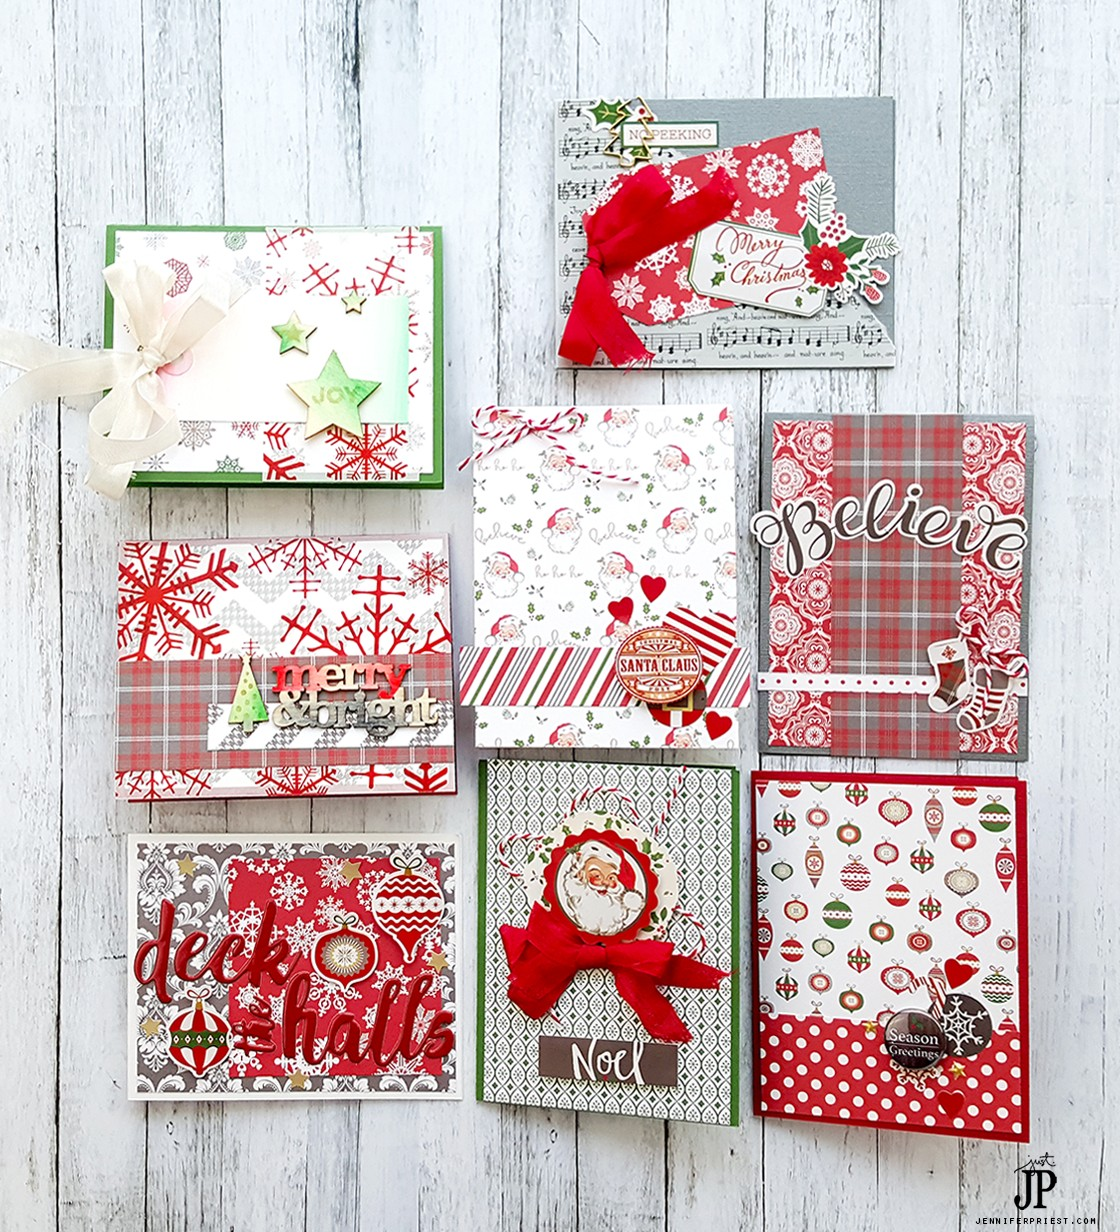 Fast-Christmas-Cards---Make-8-Cards-in-30-Minutes-Clique-Kits-Tombow-USA-Jpriest